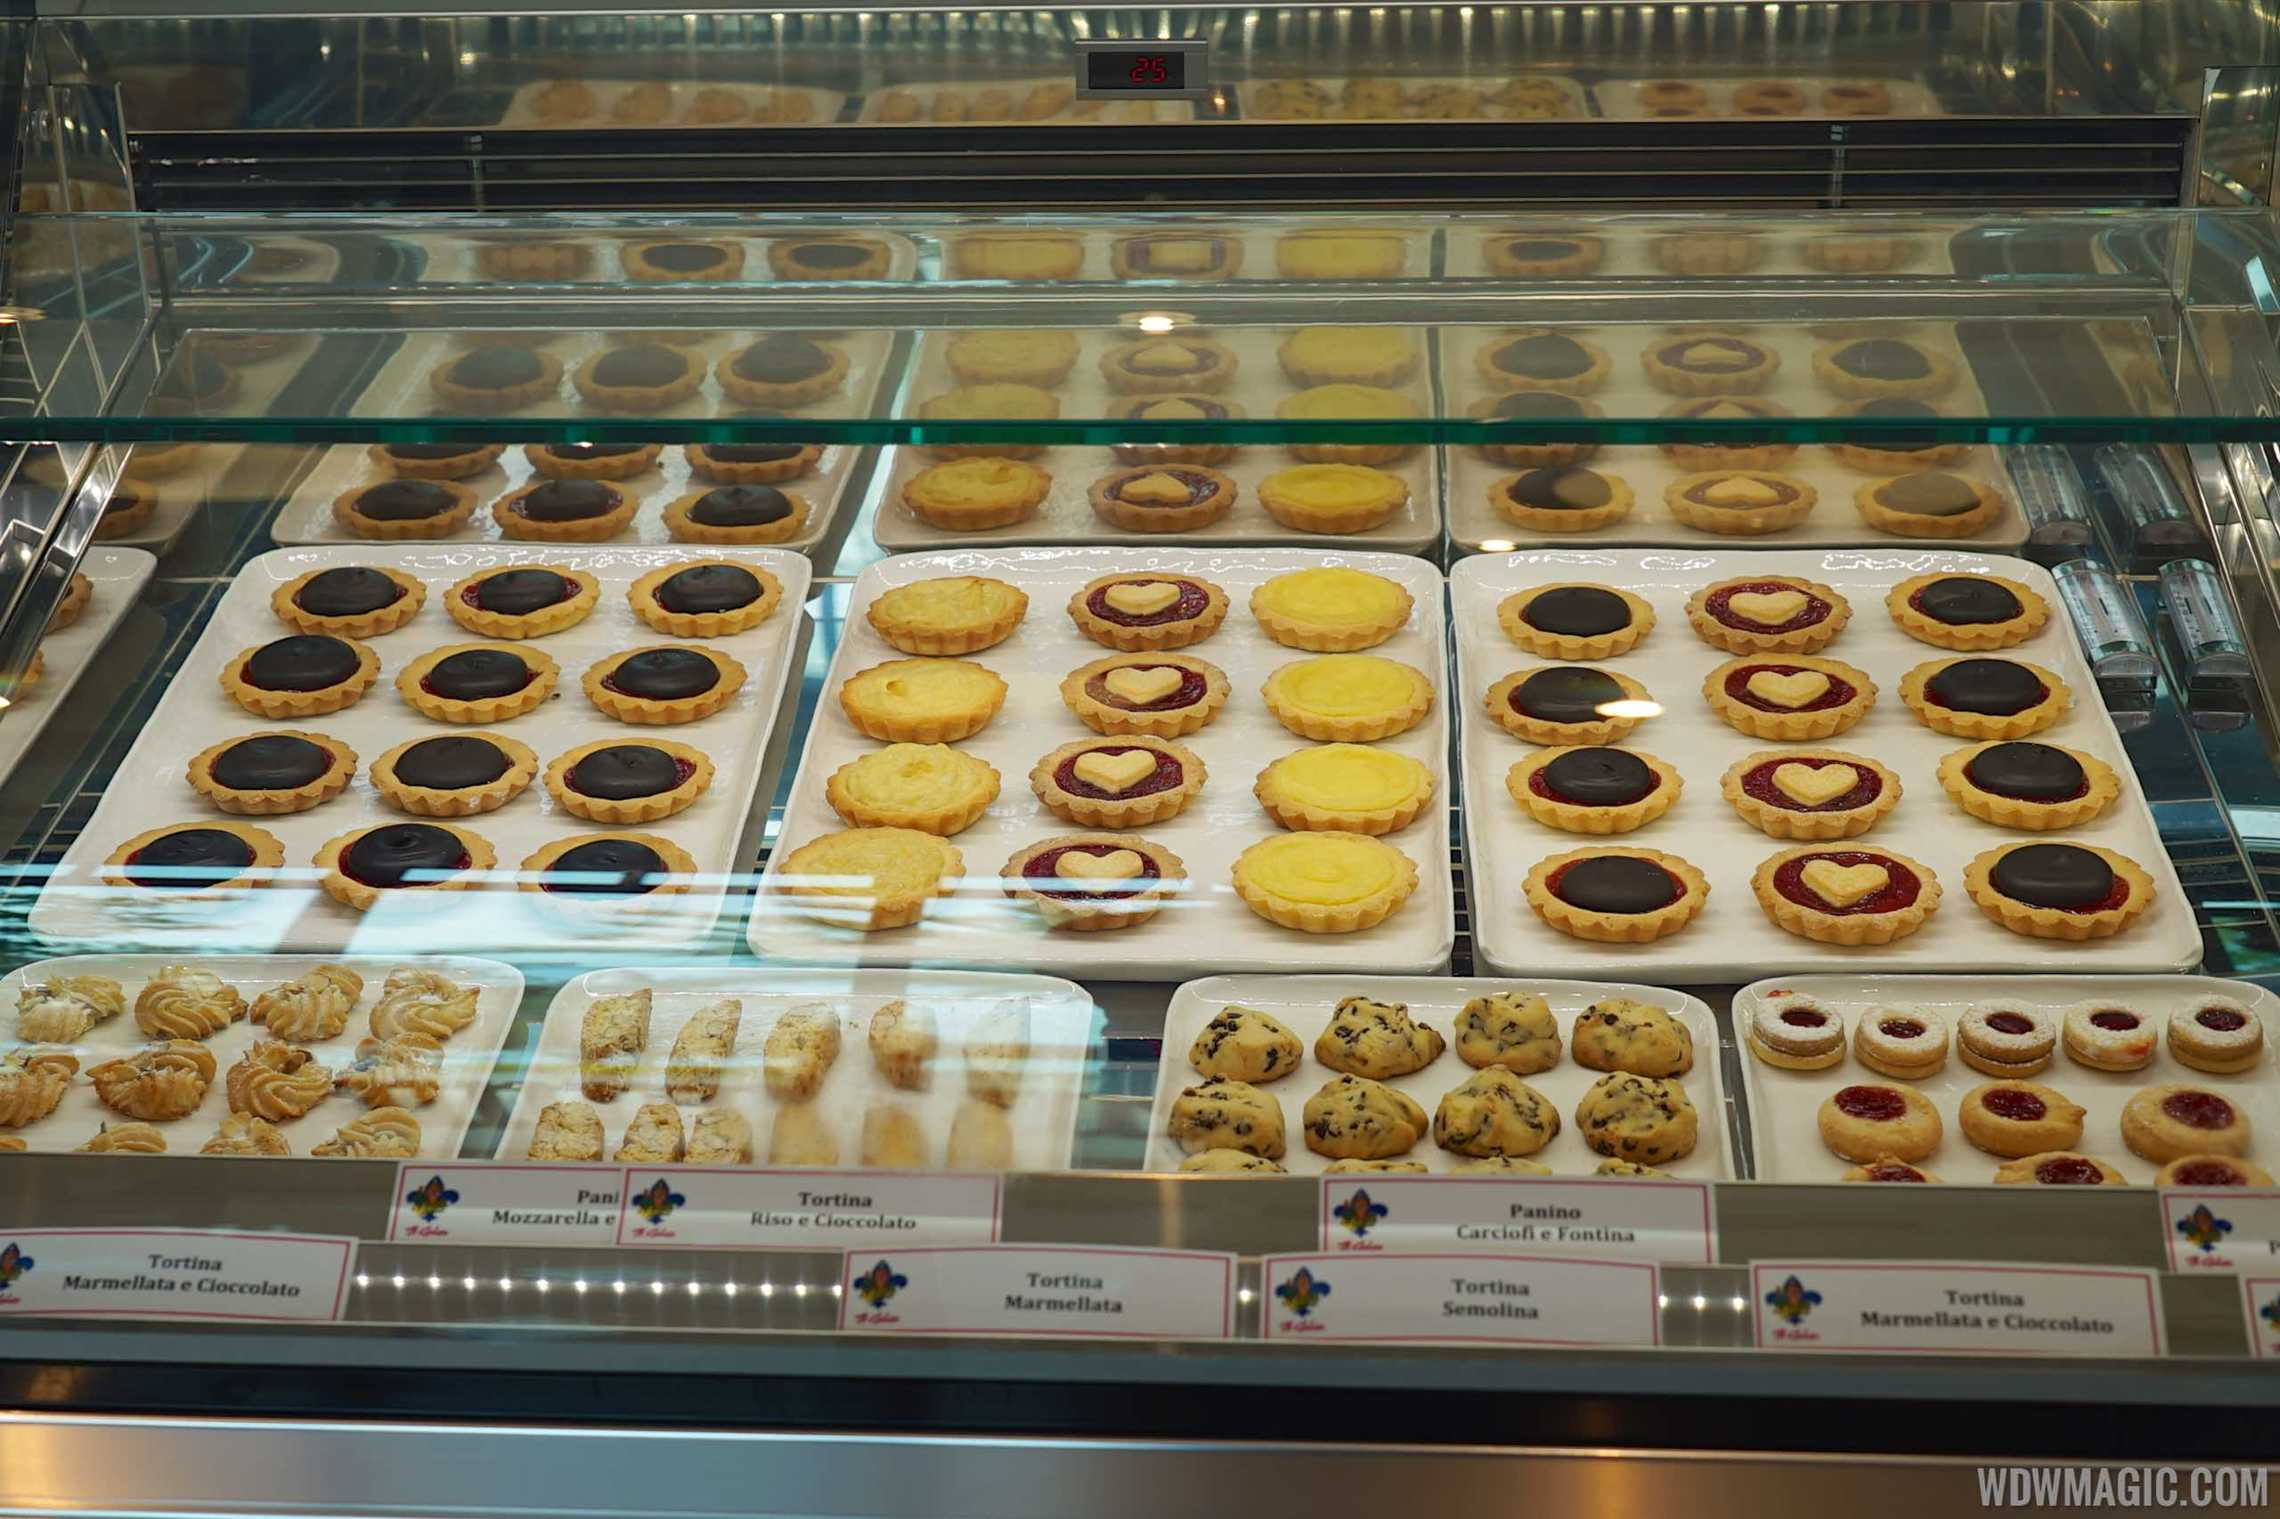 Vivoli Gelateria - Baked goods display